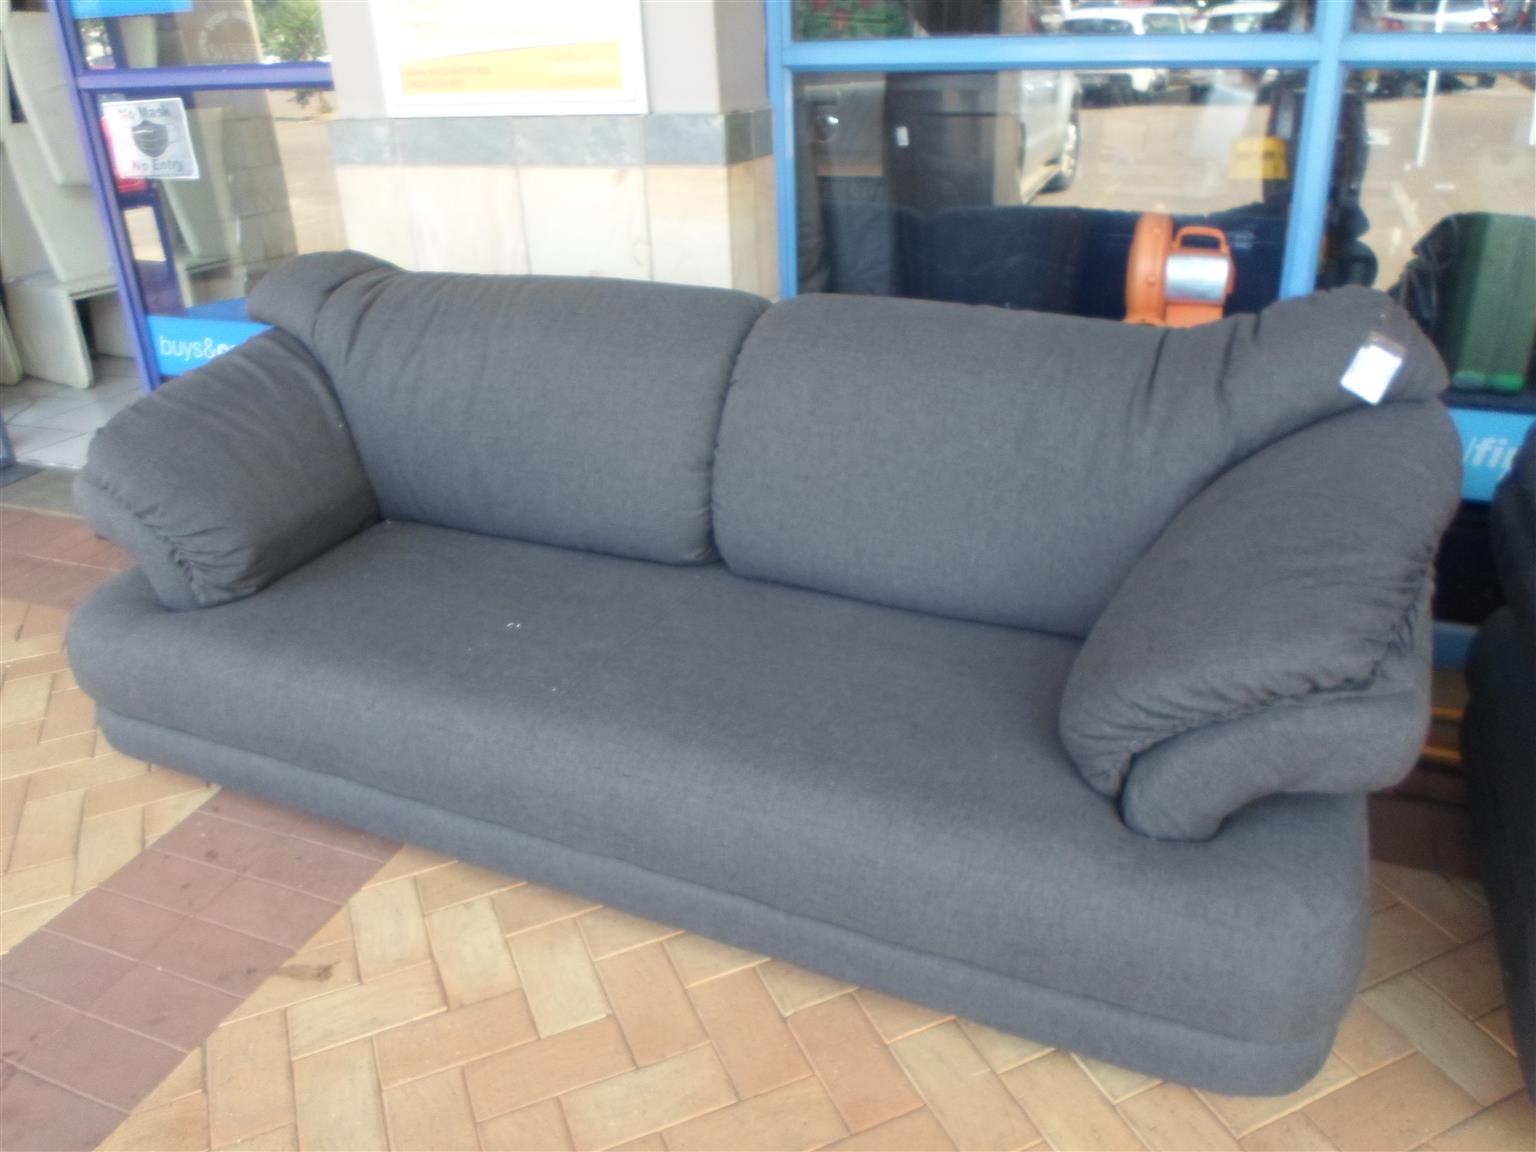 Upholstered 3 Seater Couch